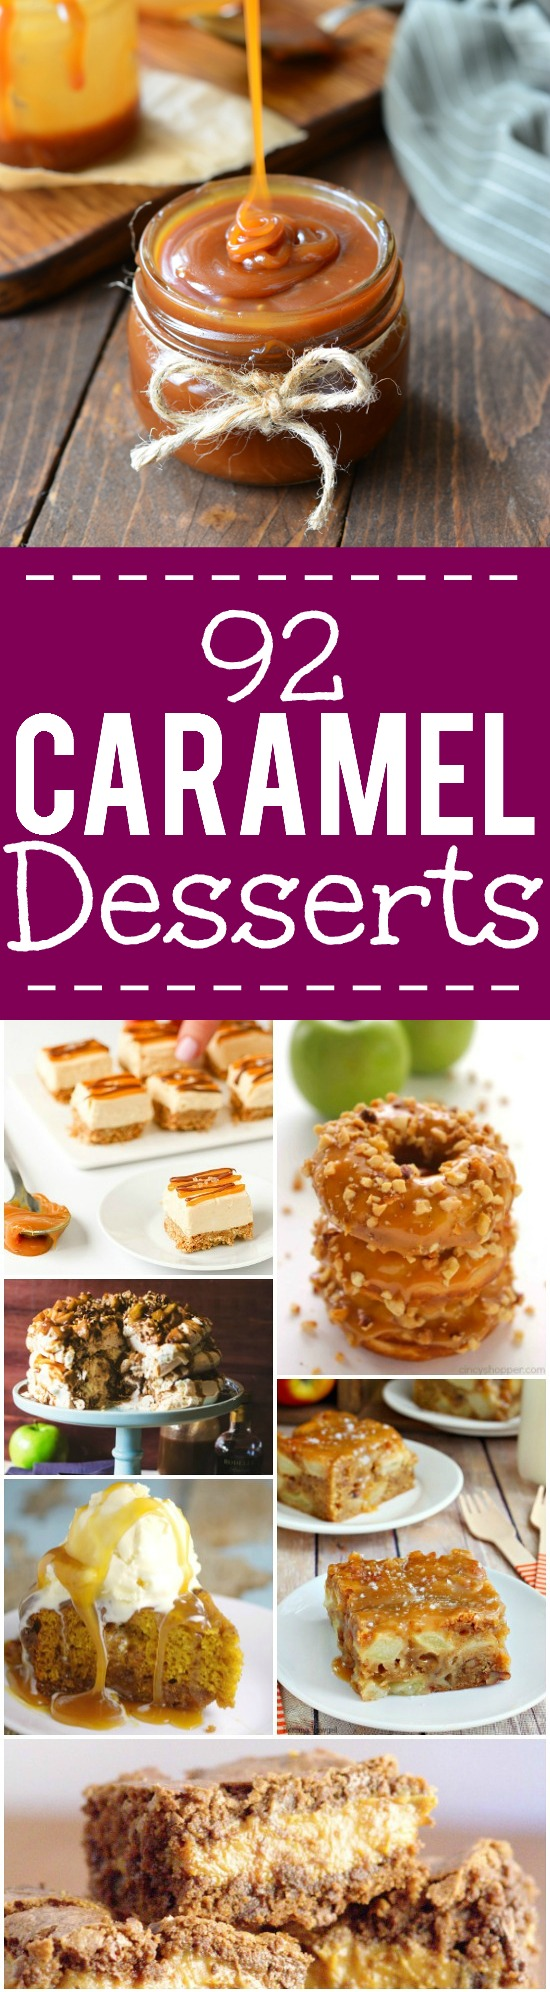 92 Caramel Desserts Recipes - 92 of the BEST scrumptious and decadent caramel desserts recipes that are totally drool-worthy.  Make these gooey, sweet caramel recipes and indulge your sweet tooth! Wow! These look amazing! Can't decide which one I want to try first!